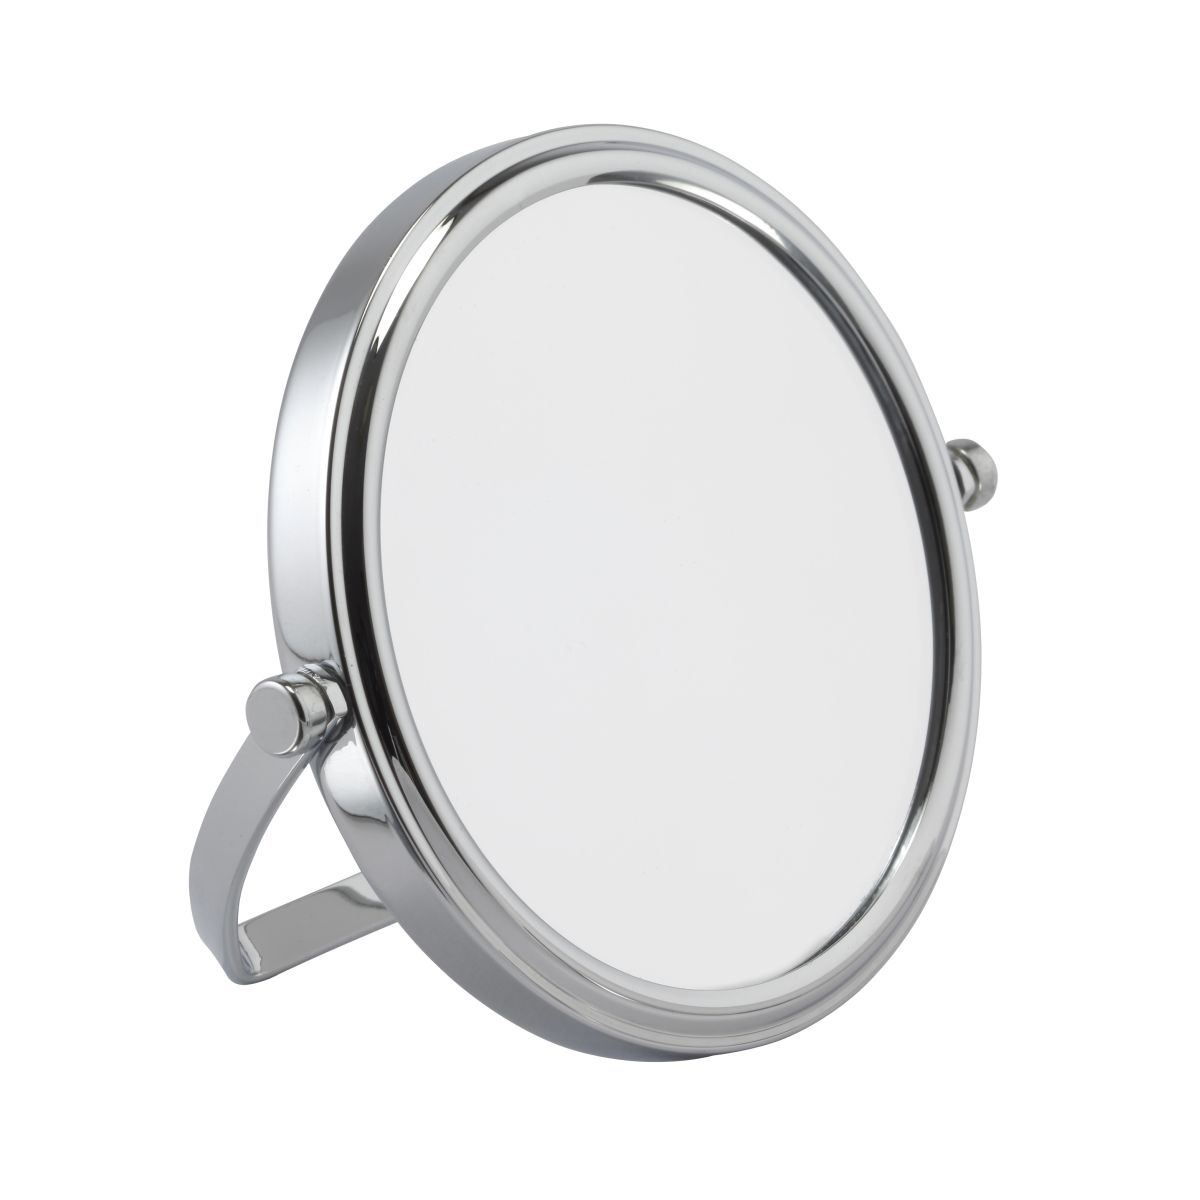 702 7c 2 - Small / Handy 7x Magnification Chrome Mirror - 702/7CHR